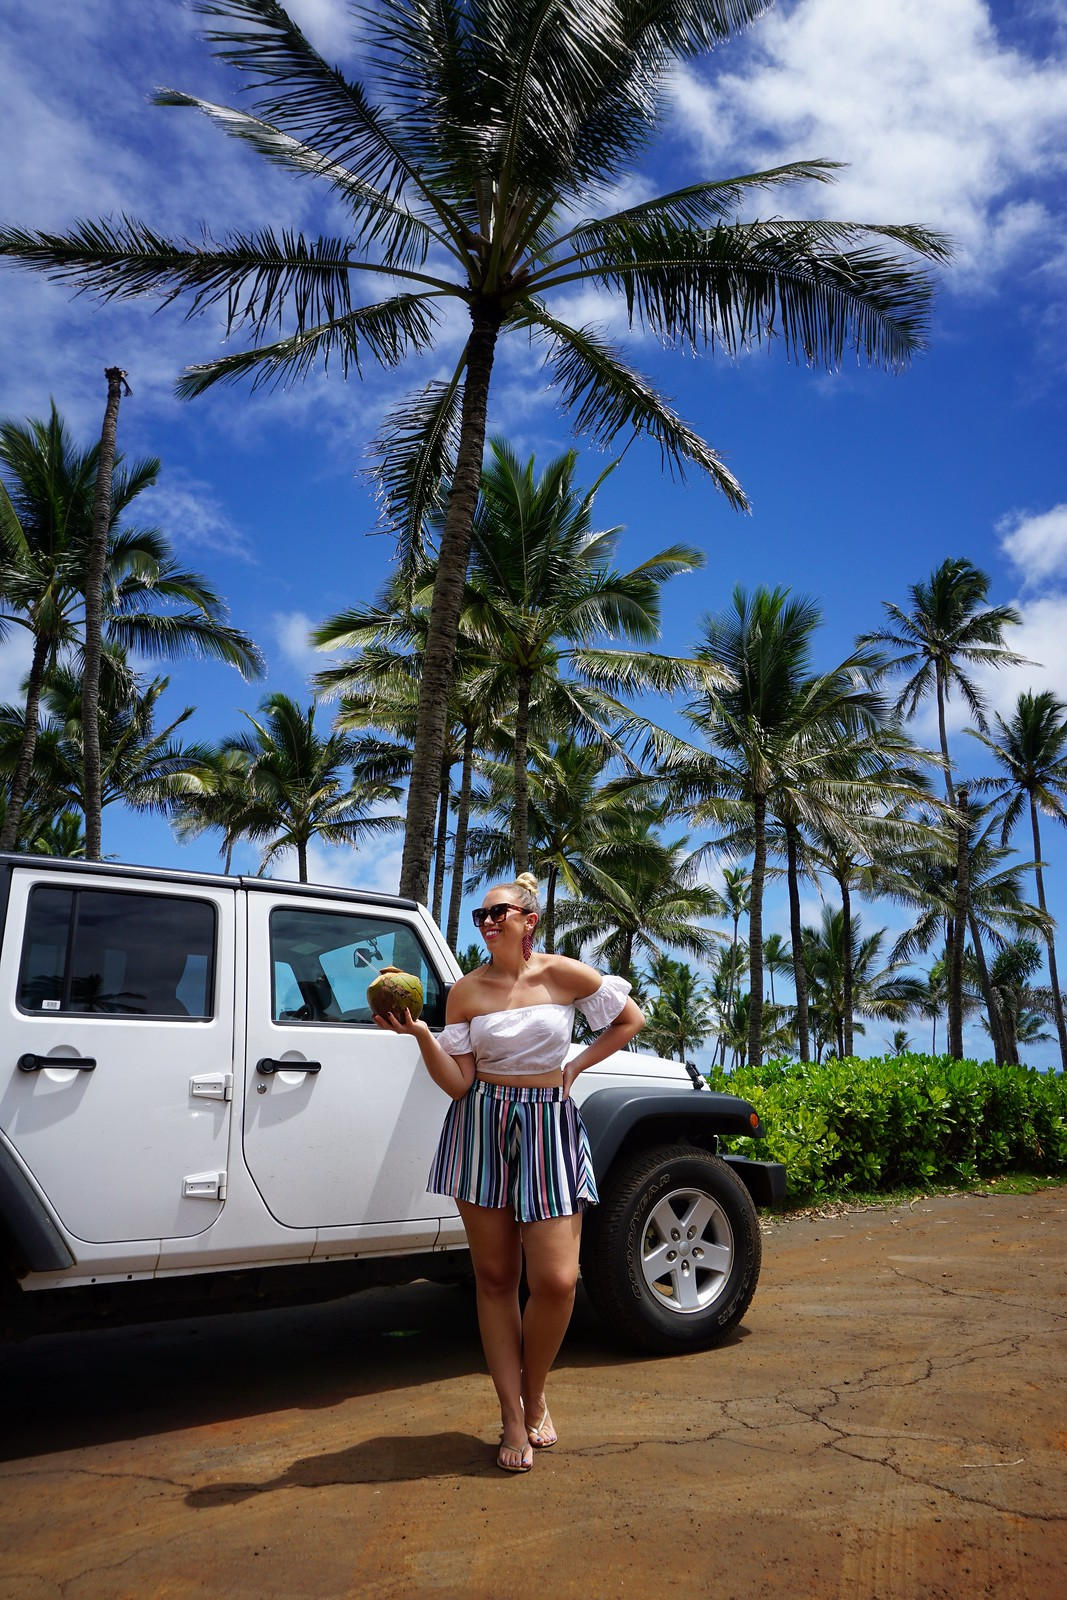 White Off Shoulder Crop Top Blue Striped Shorts White Jeep Hawaii Outfit Hilton Garden Inn Kauai Wailua Bay Best Things to do in Kauai Hawaii